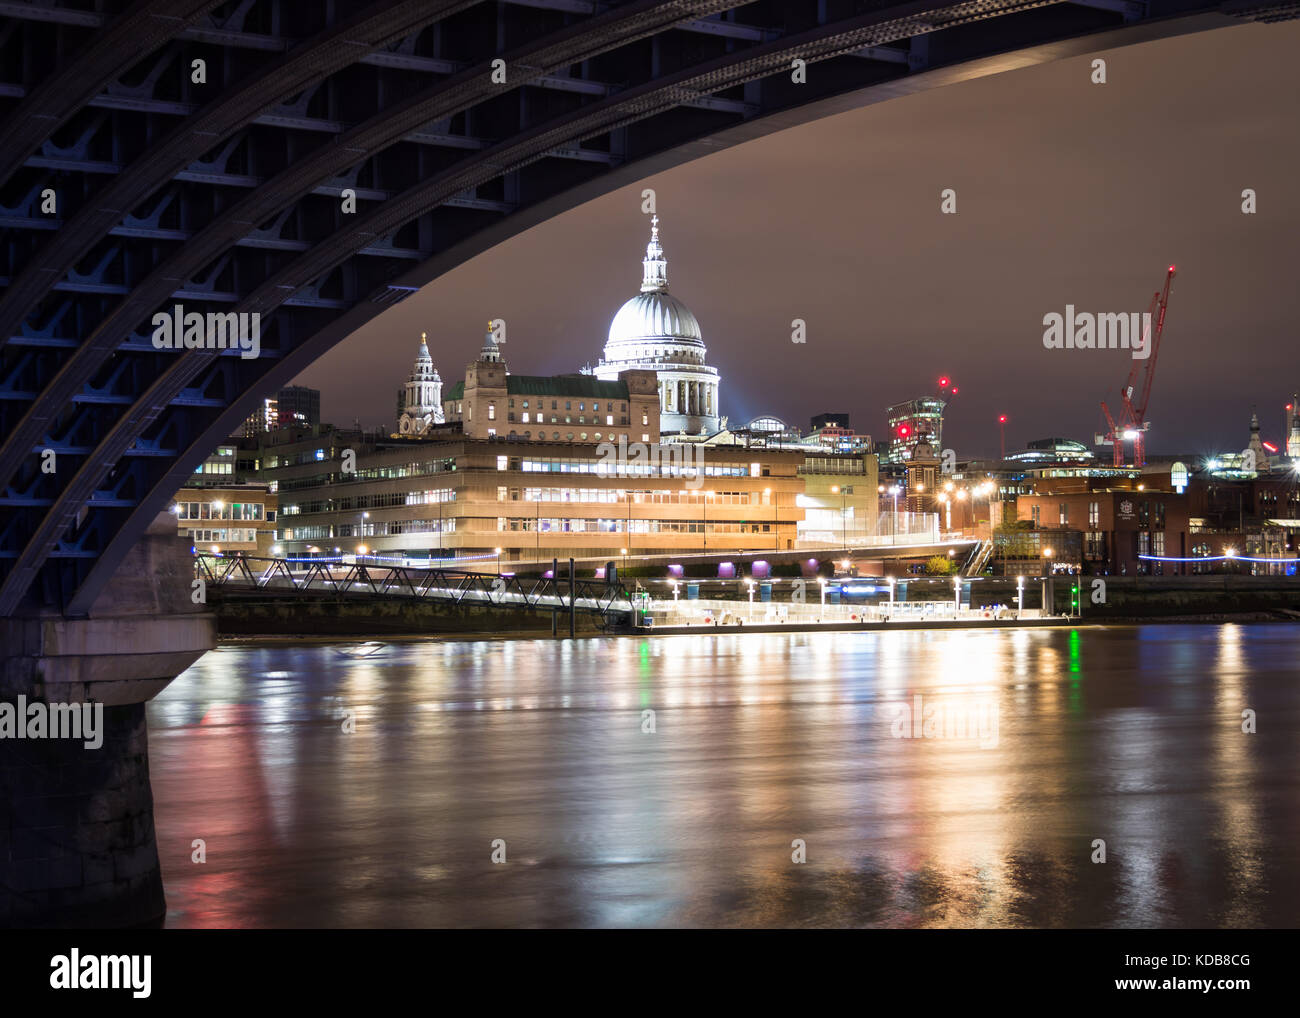 A view of St. Paul's Cathedral as seen from Blackfriars Bridge in London, UK. - Stock Image